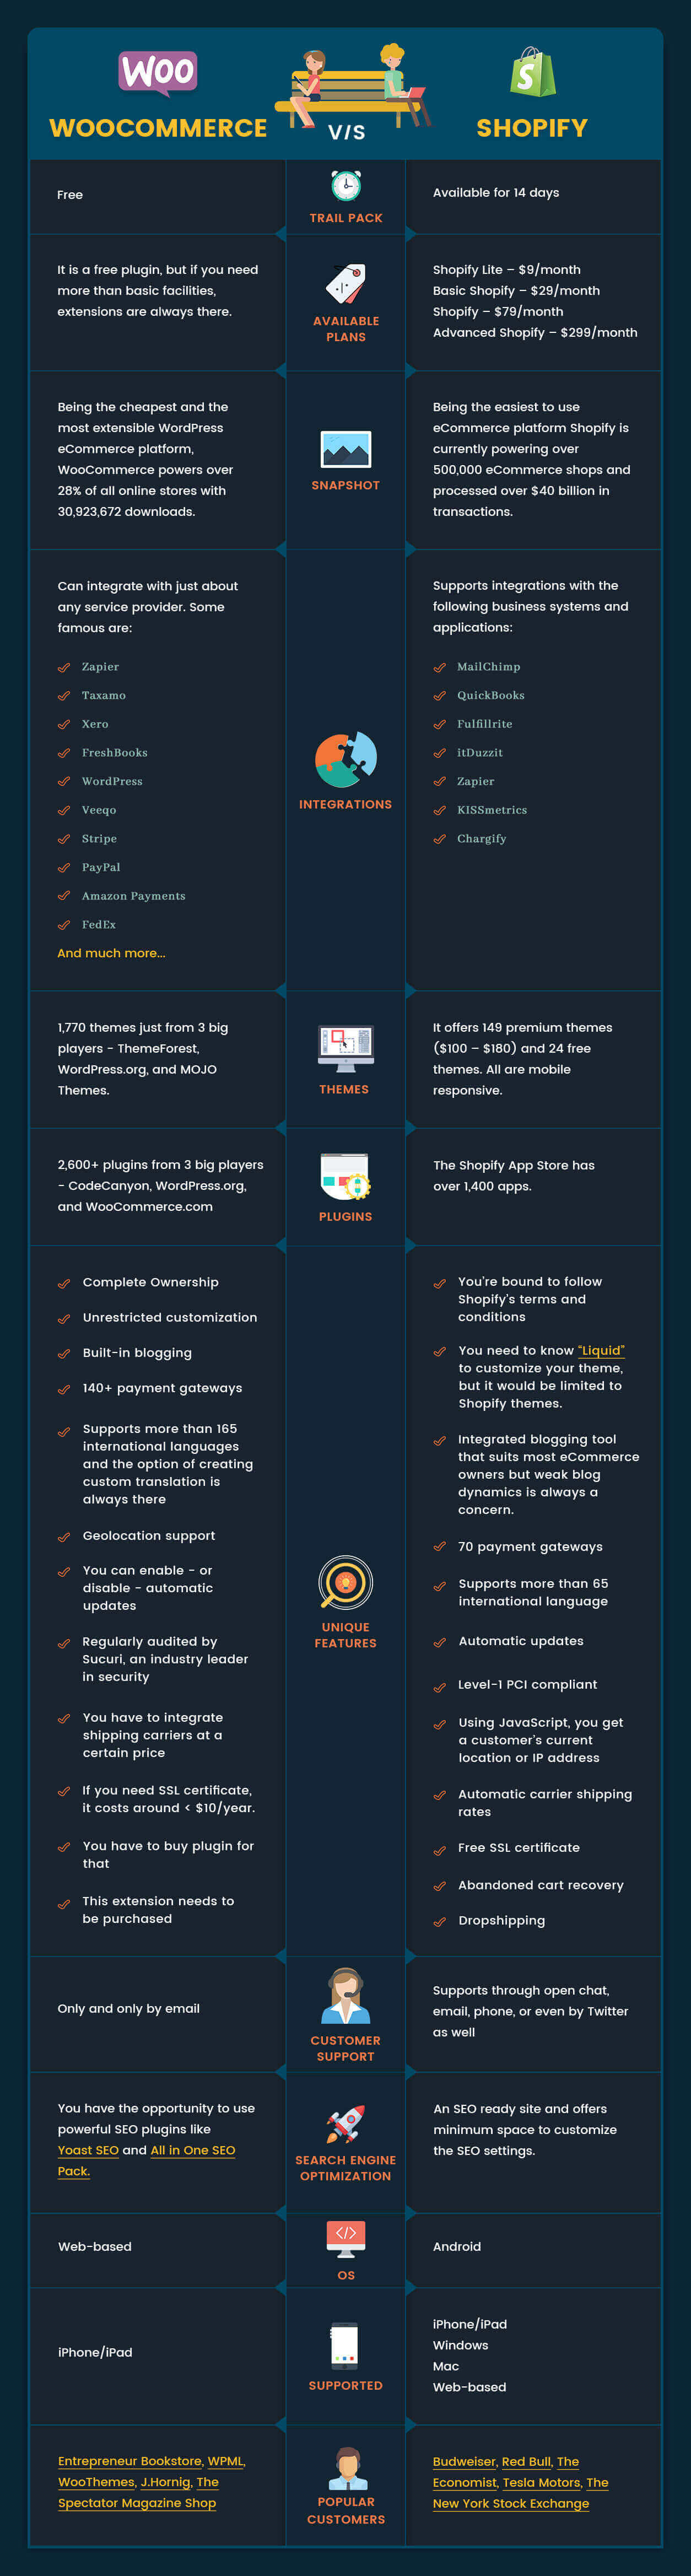 WooCommerce Vs. Shopify. Which eCommerce Platform is Best for Me- infographic